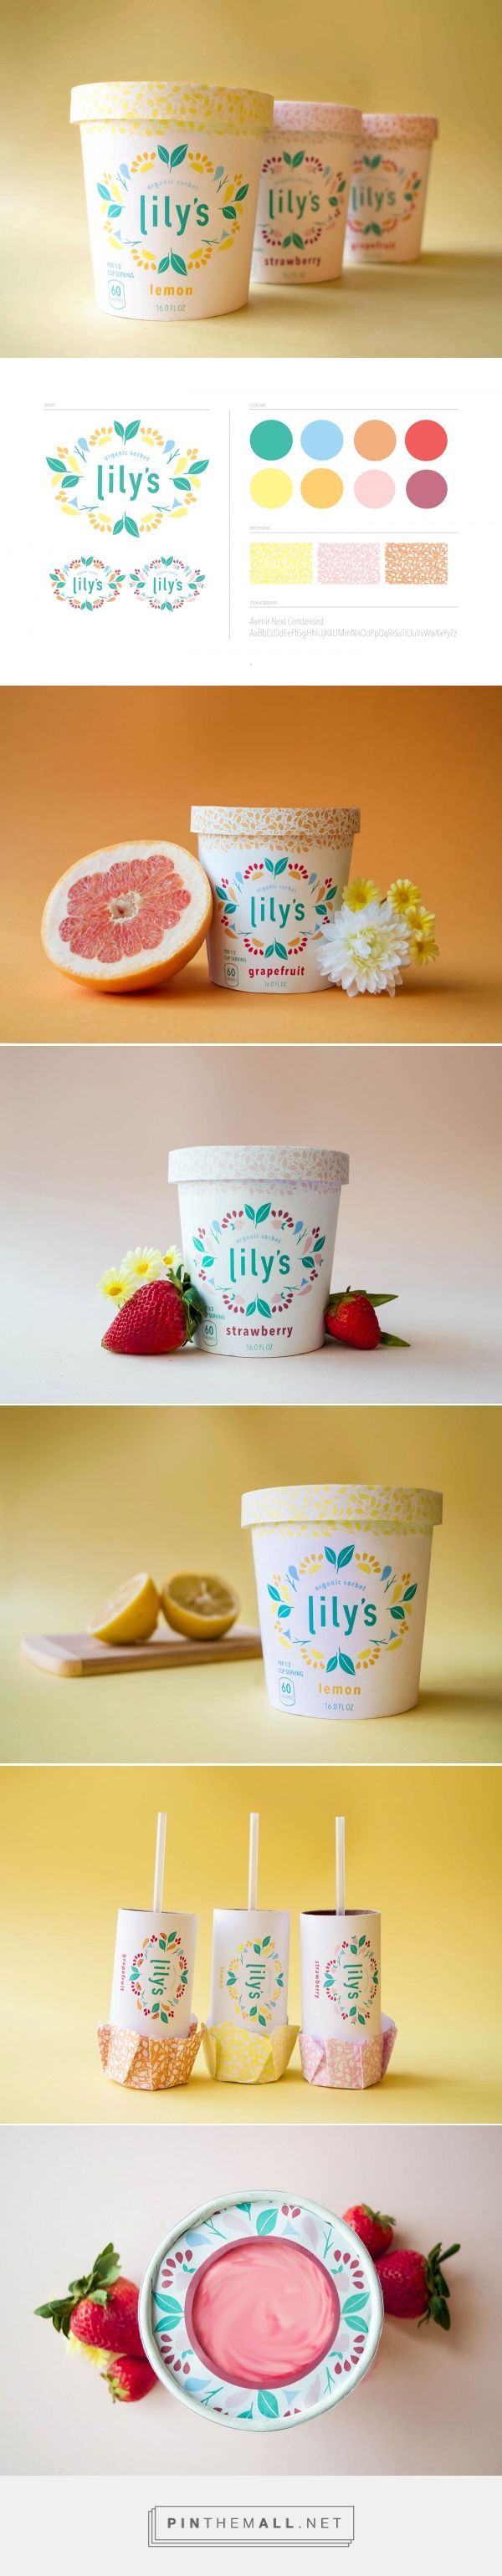 Lily's Organic Sorbet by Emma Dahlgren.Source: Behance. Pin curated by #SFields99 #packaging #design #inspiration #ideas #icecream #branding